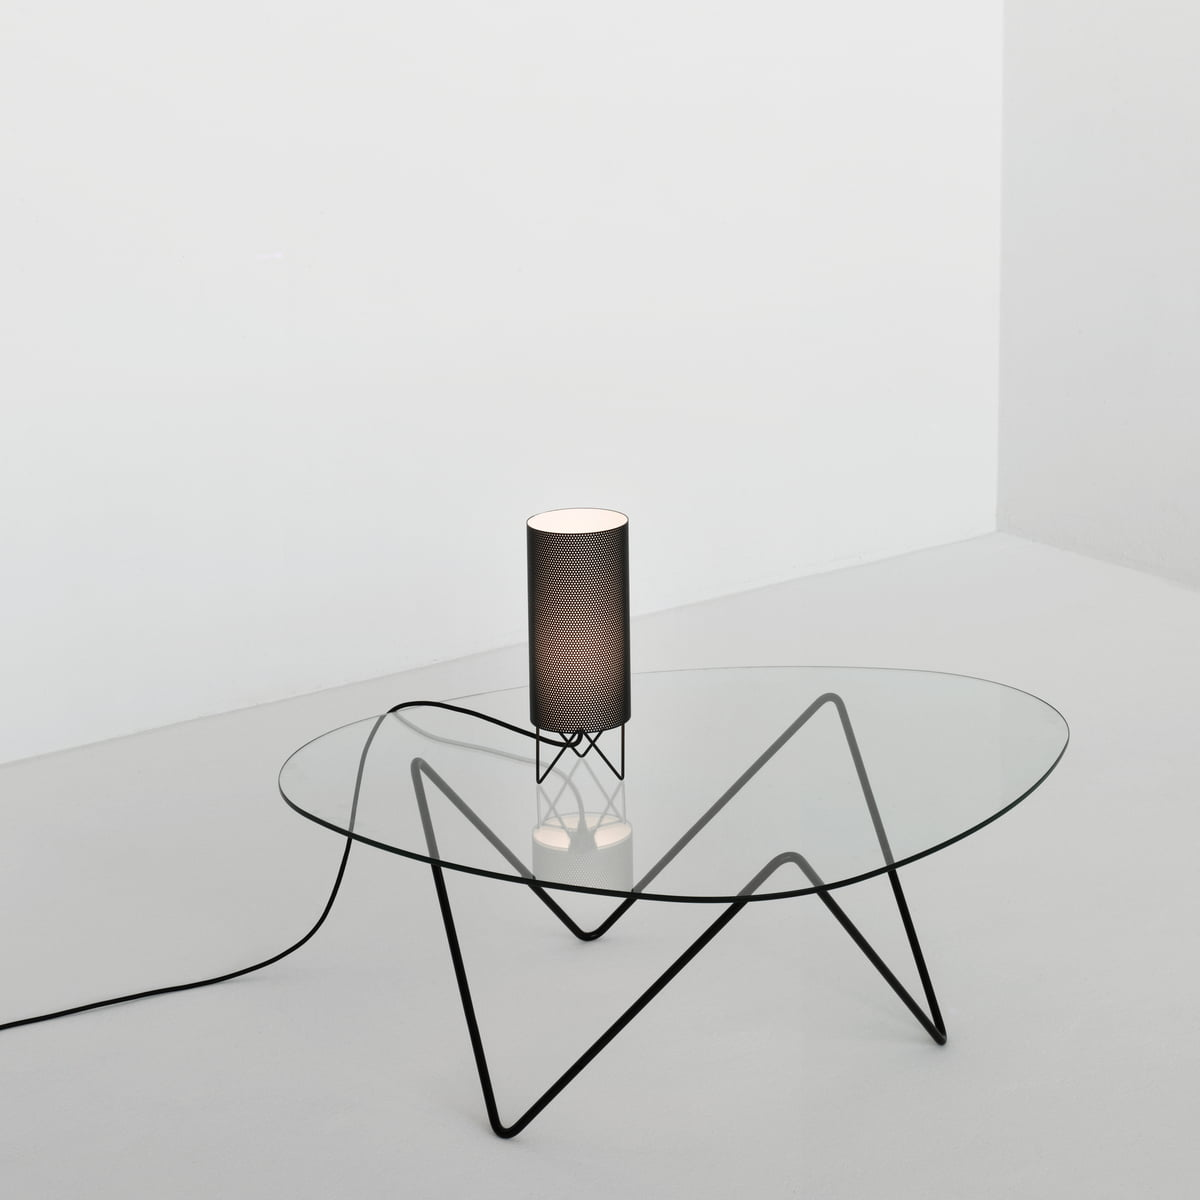 Sophisticated Design Lighthearted Atmosphere Gubi Pedrera Coffe Table And Lamp Pd1